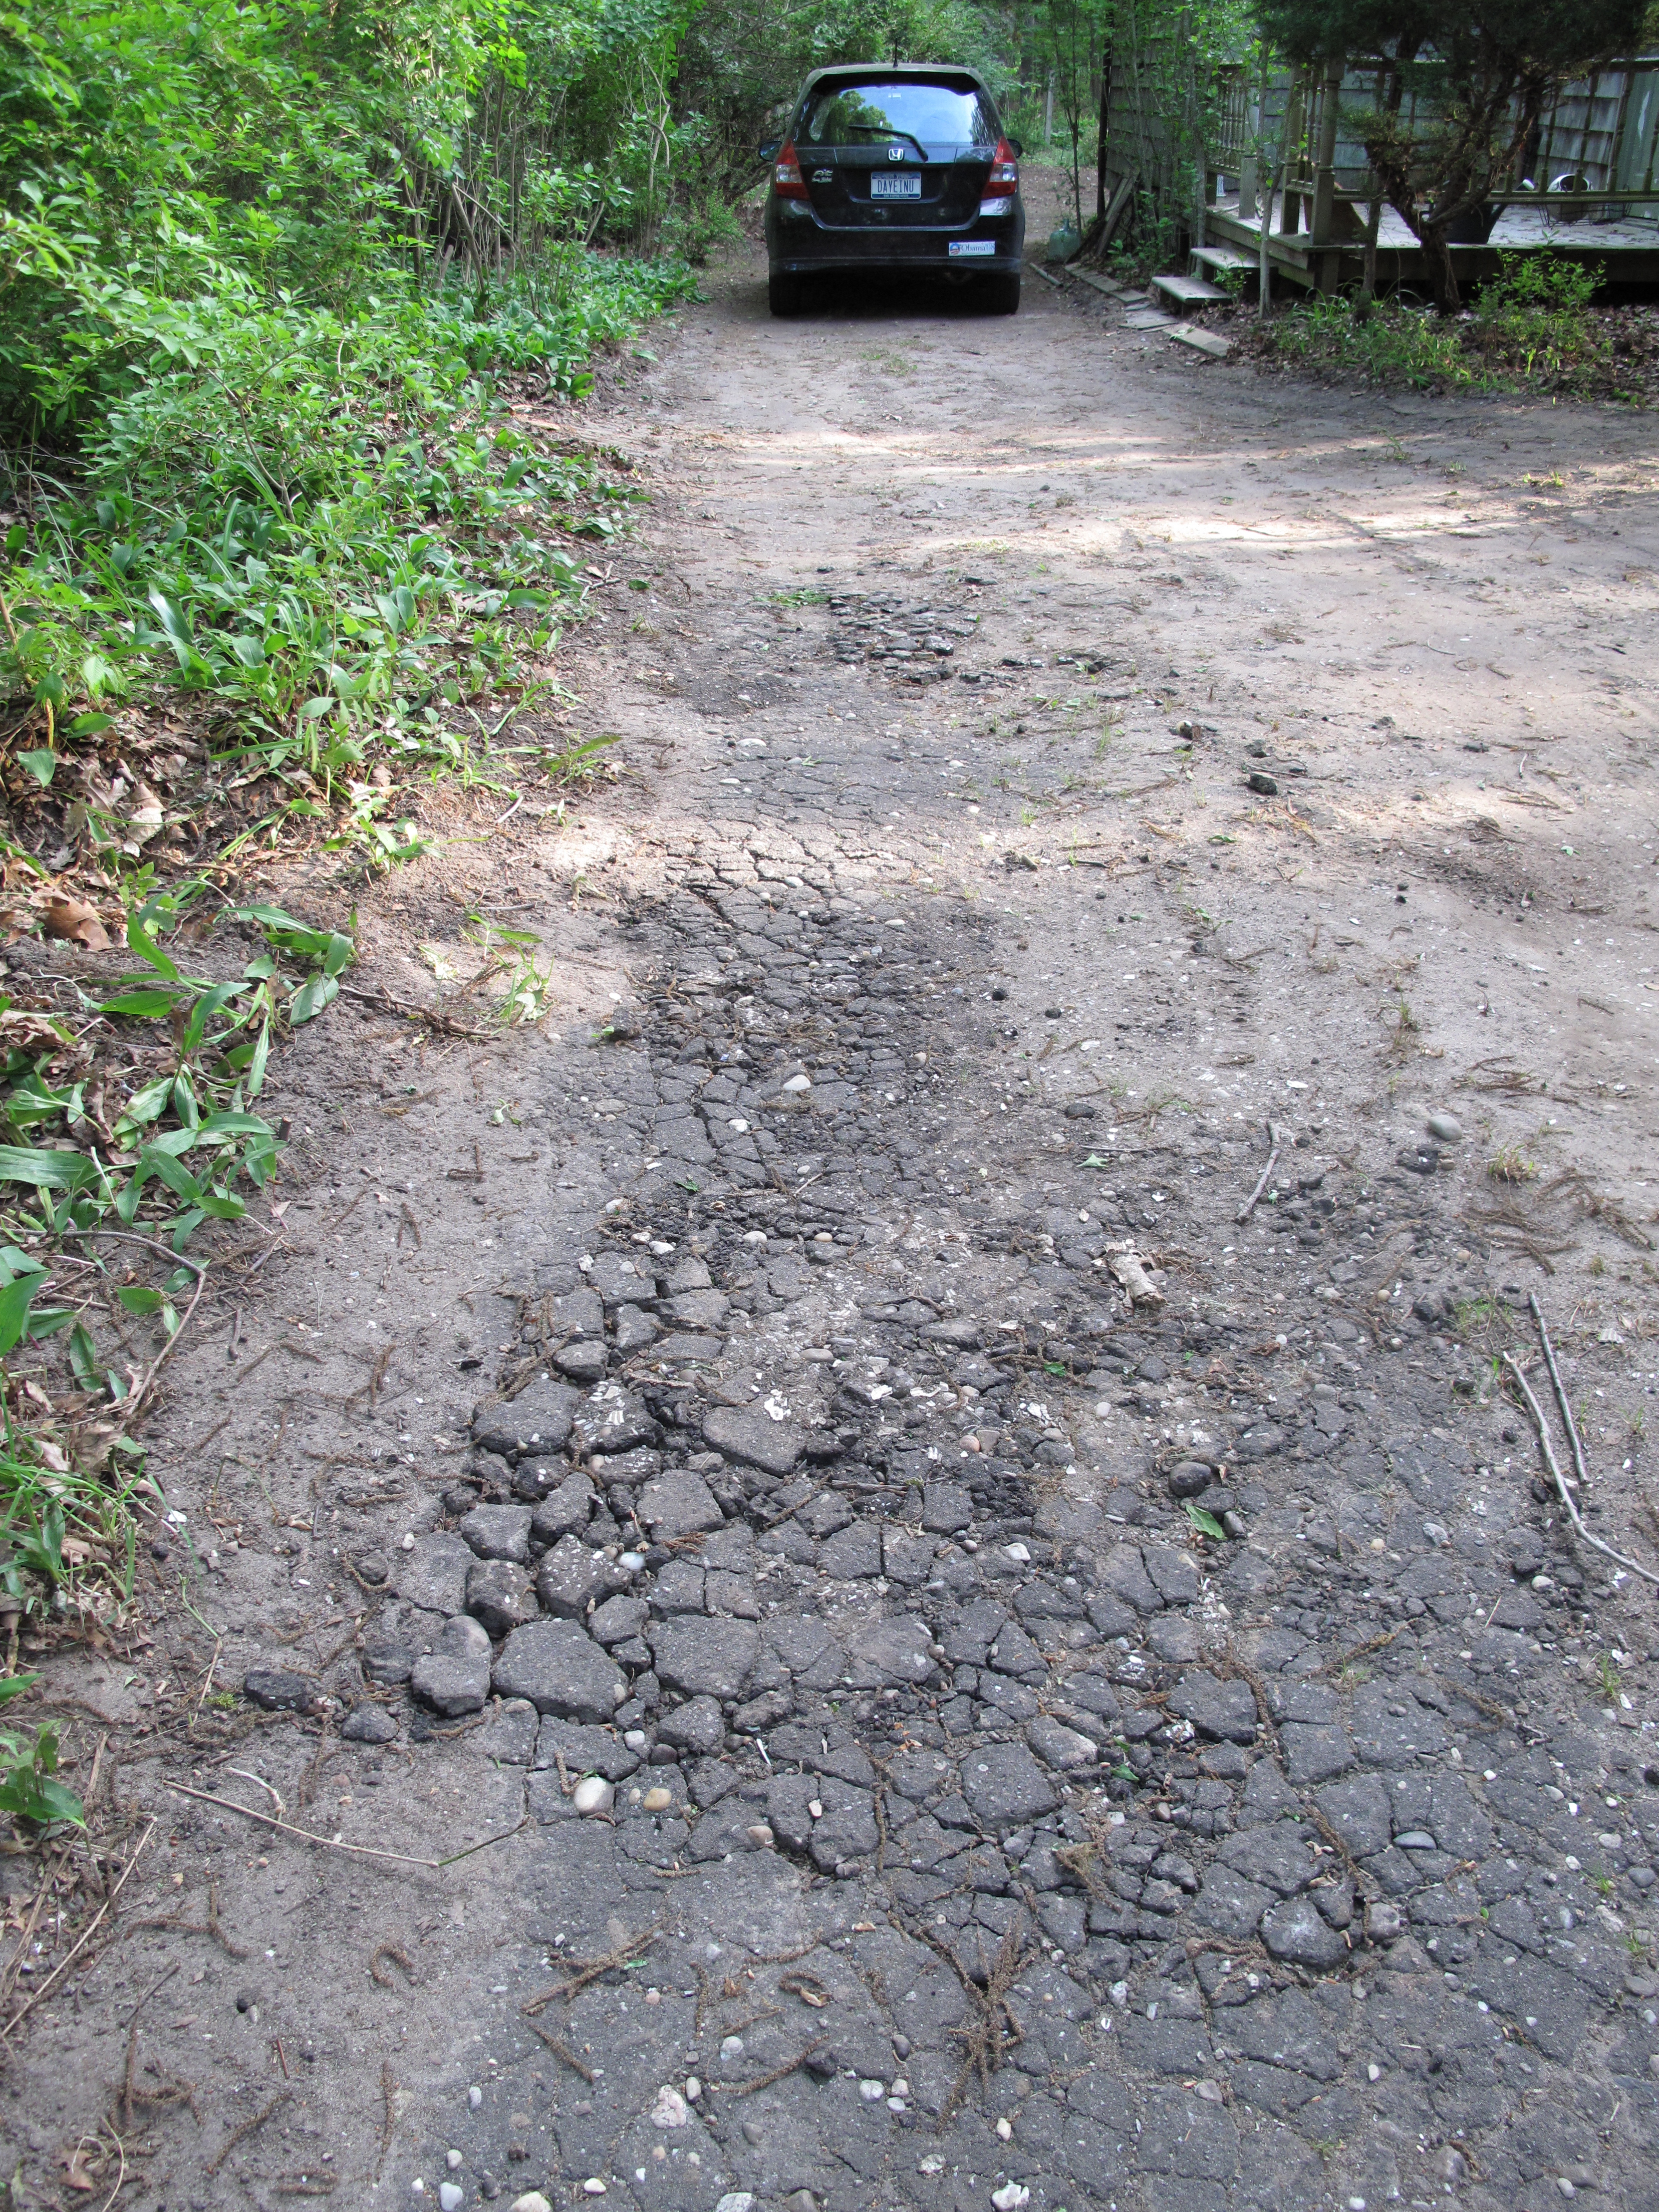 Got a $2600 quote for an 80' gravel driveway lined with Belgian block but i'm in no great hurry